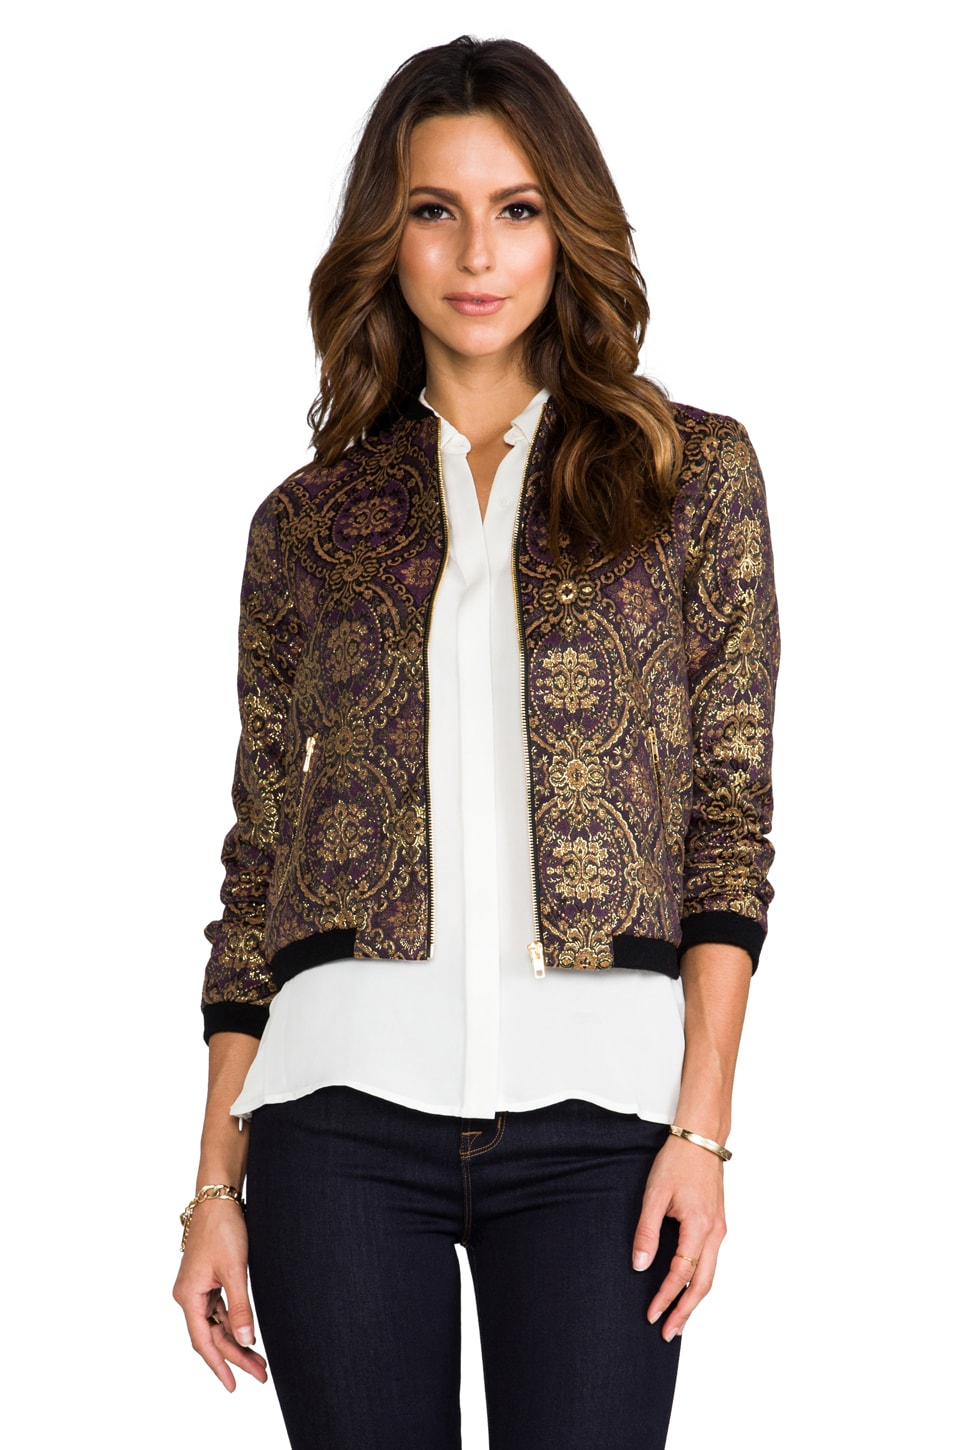 BB Dakota Joss Vintage Brocade Bomber Jacket in Regal Purple